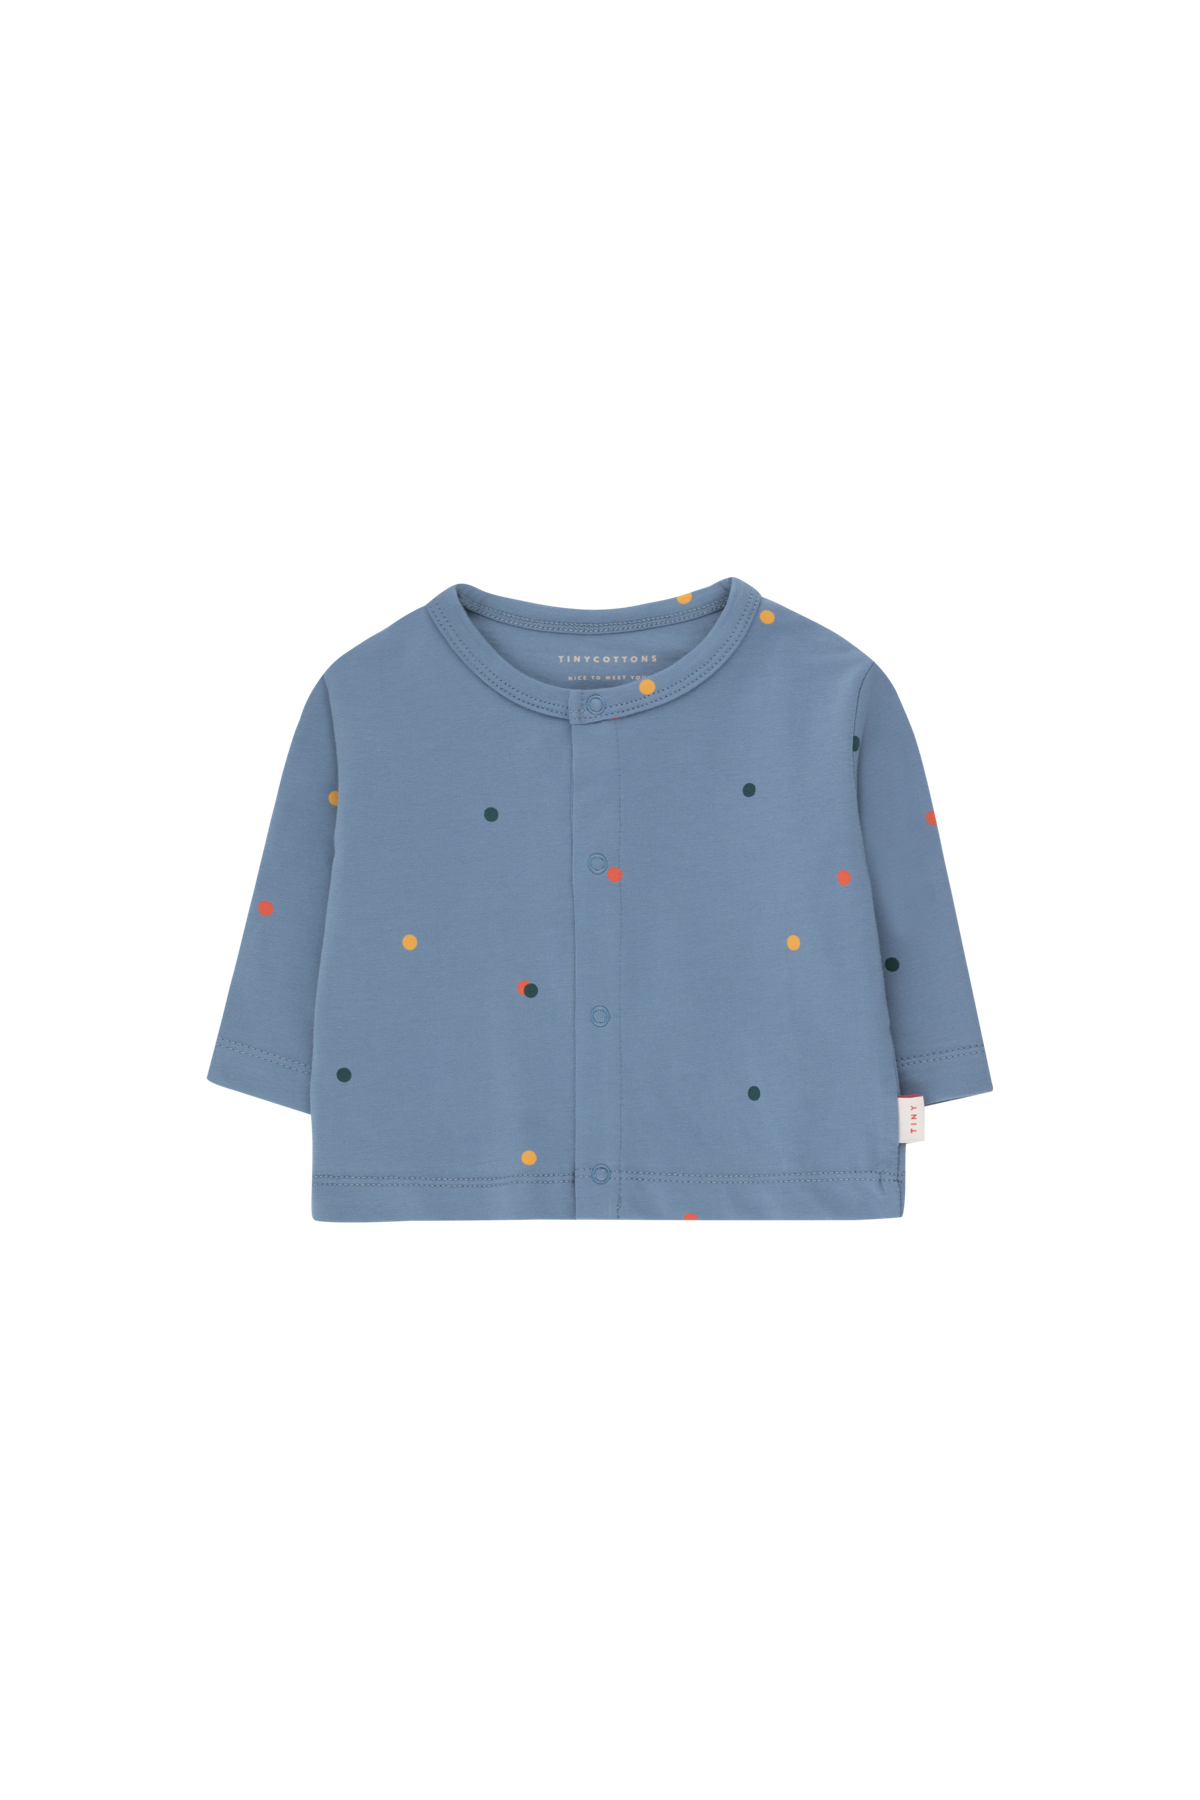 tinycottons ice cream dots baby cardigan grey blue